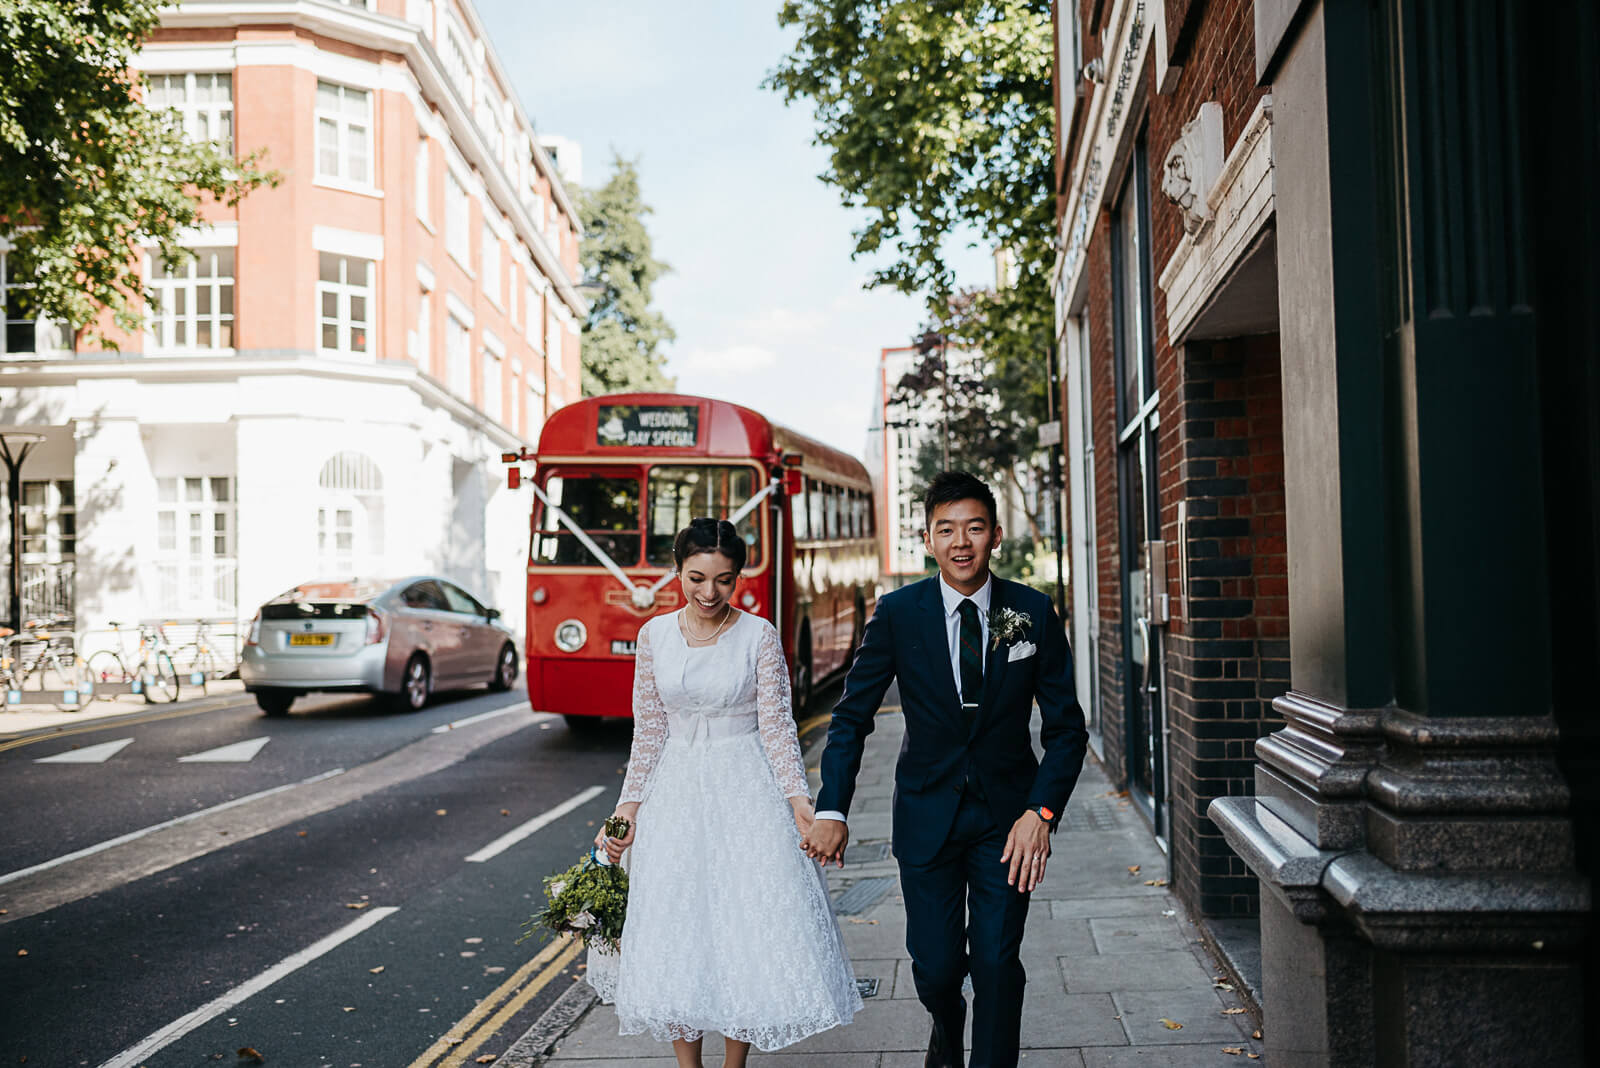 Bride and groom walking away from vintage red London Bus towarsds the Peasant Pub in Clerkenwell